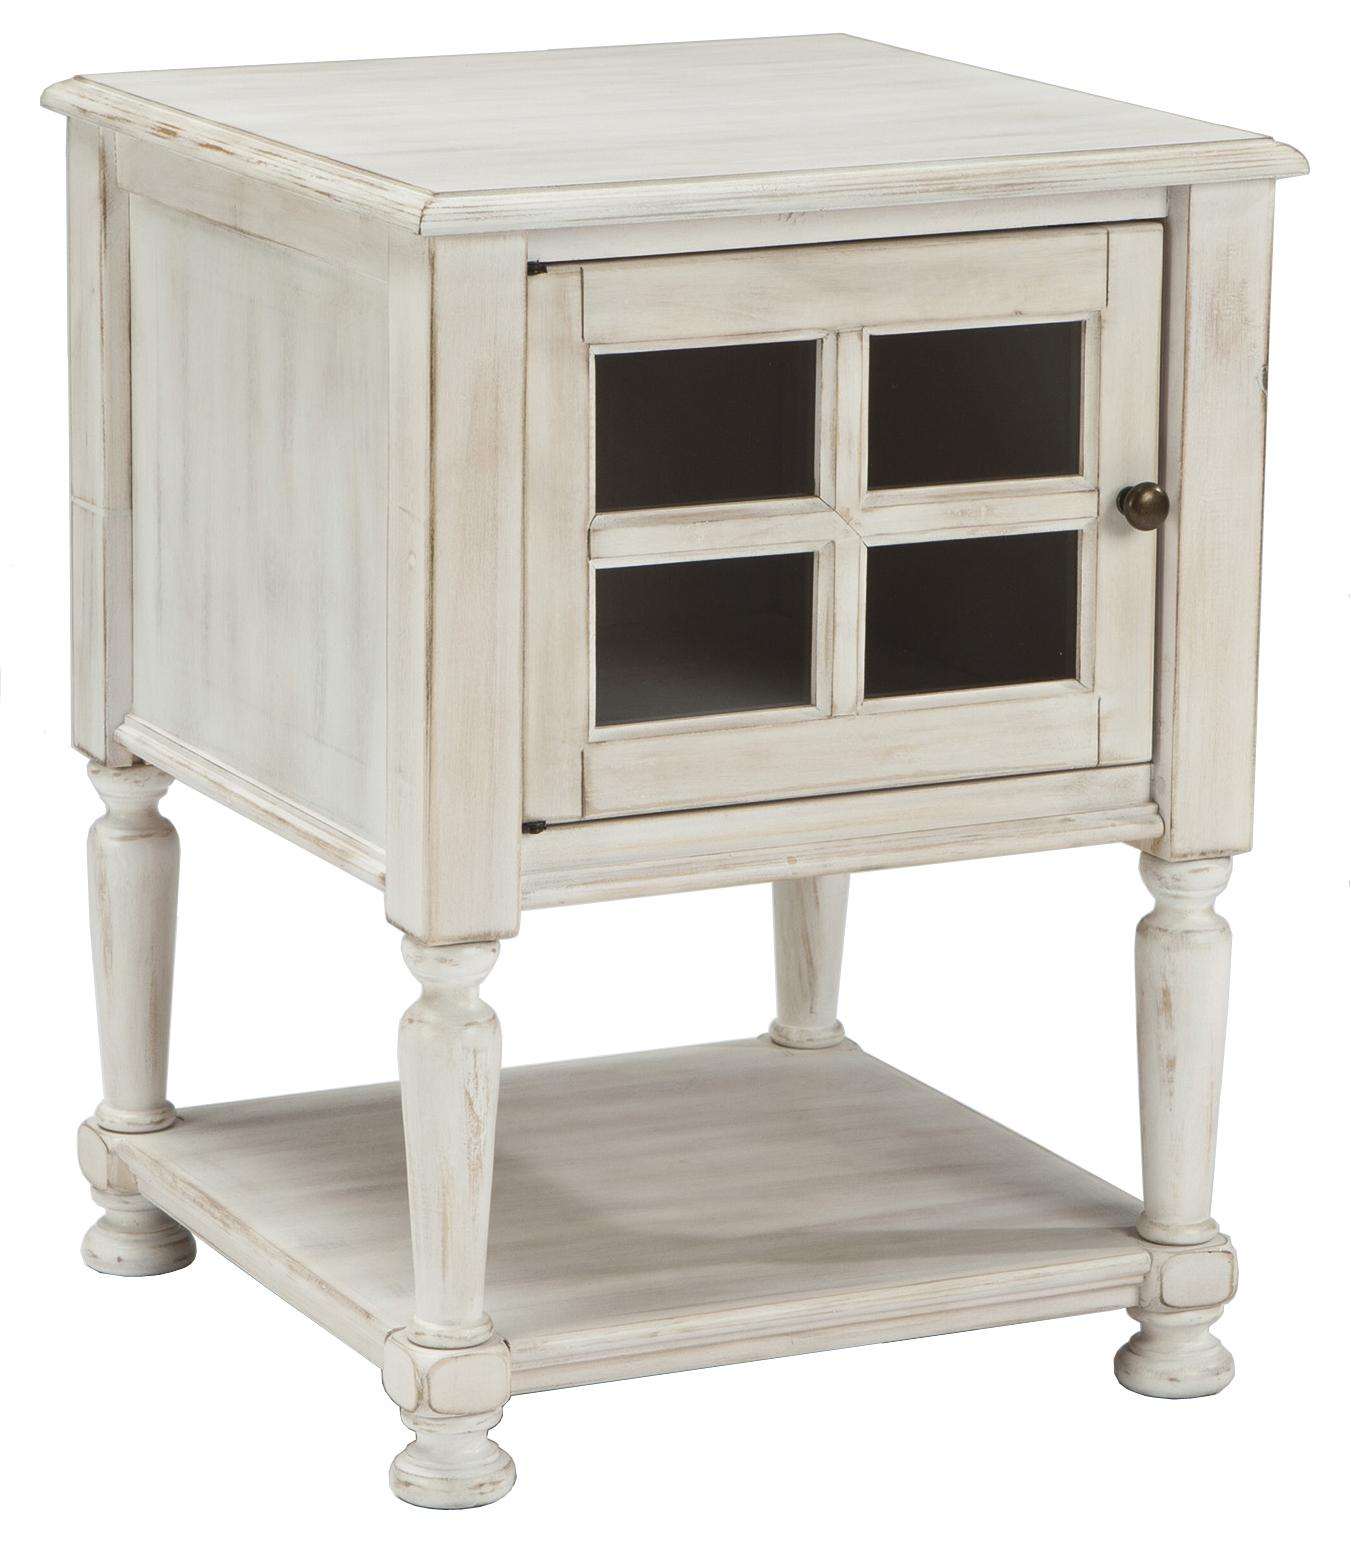 signature design ashley mirimyn chair side end table with window products color cottage accents accent doors black leather dining room chairs wood and metal round moroccan mosaic